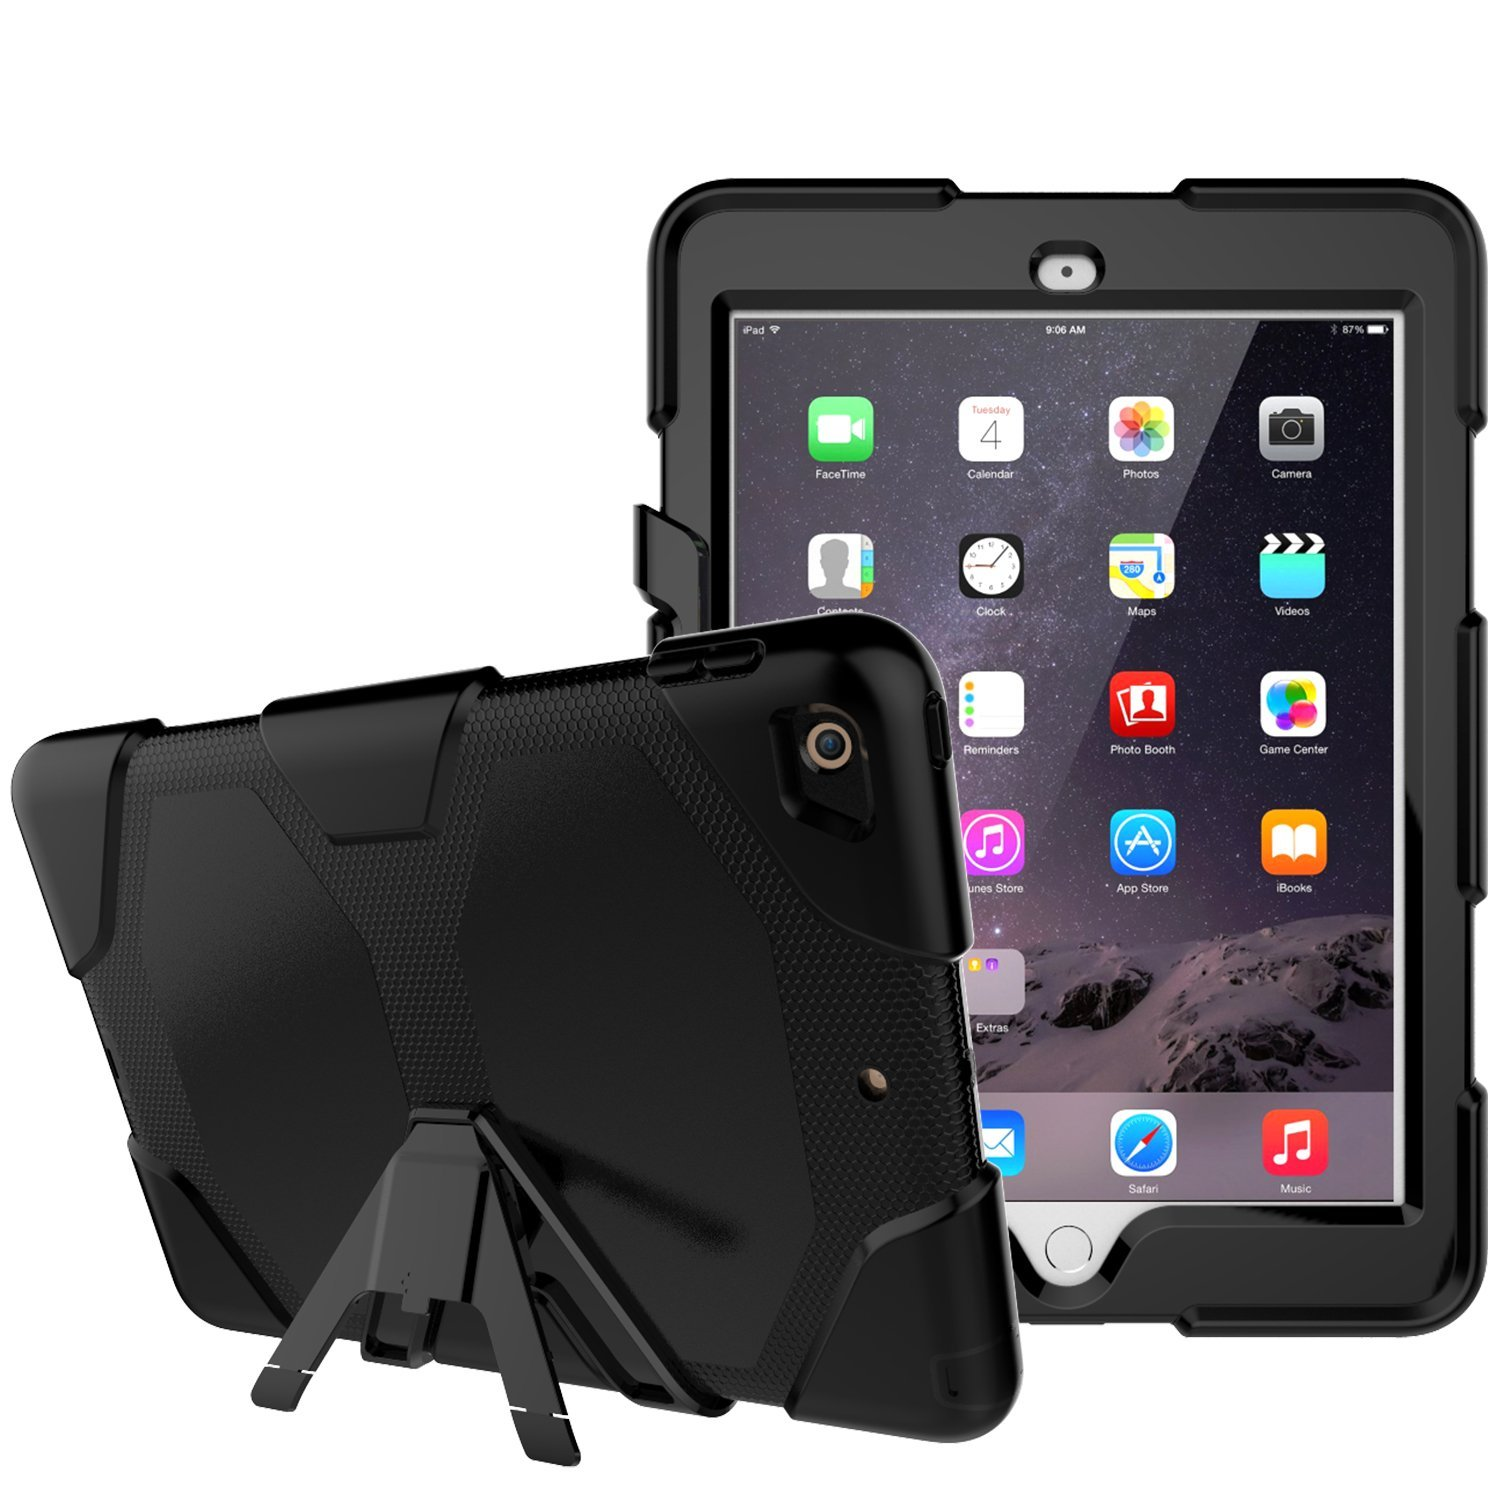 2017 Slim Heavy Duty Shockproof Case For iPad 9.7Inch Rugged Silicone Cover For New iPad 9.7 Inch Tablet case for ipad pro 12 9 case tablet cover shockproof heavy duty protect skin rubber hybrid cover for ipad pro 12 9 durable 2 in 1